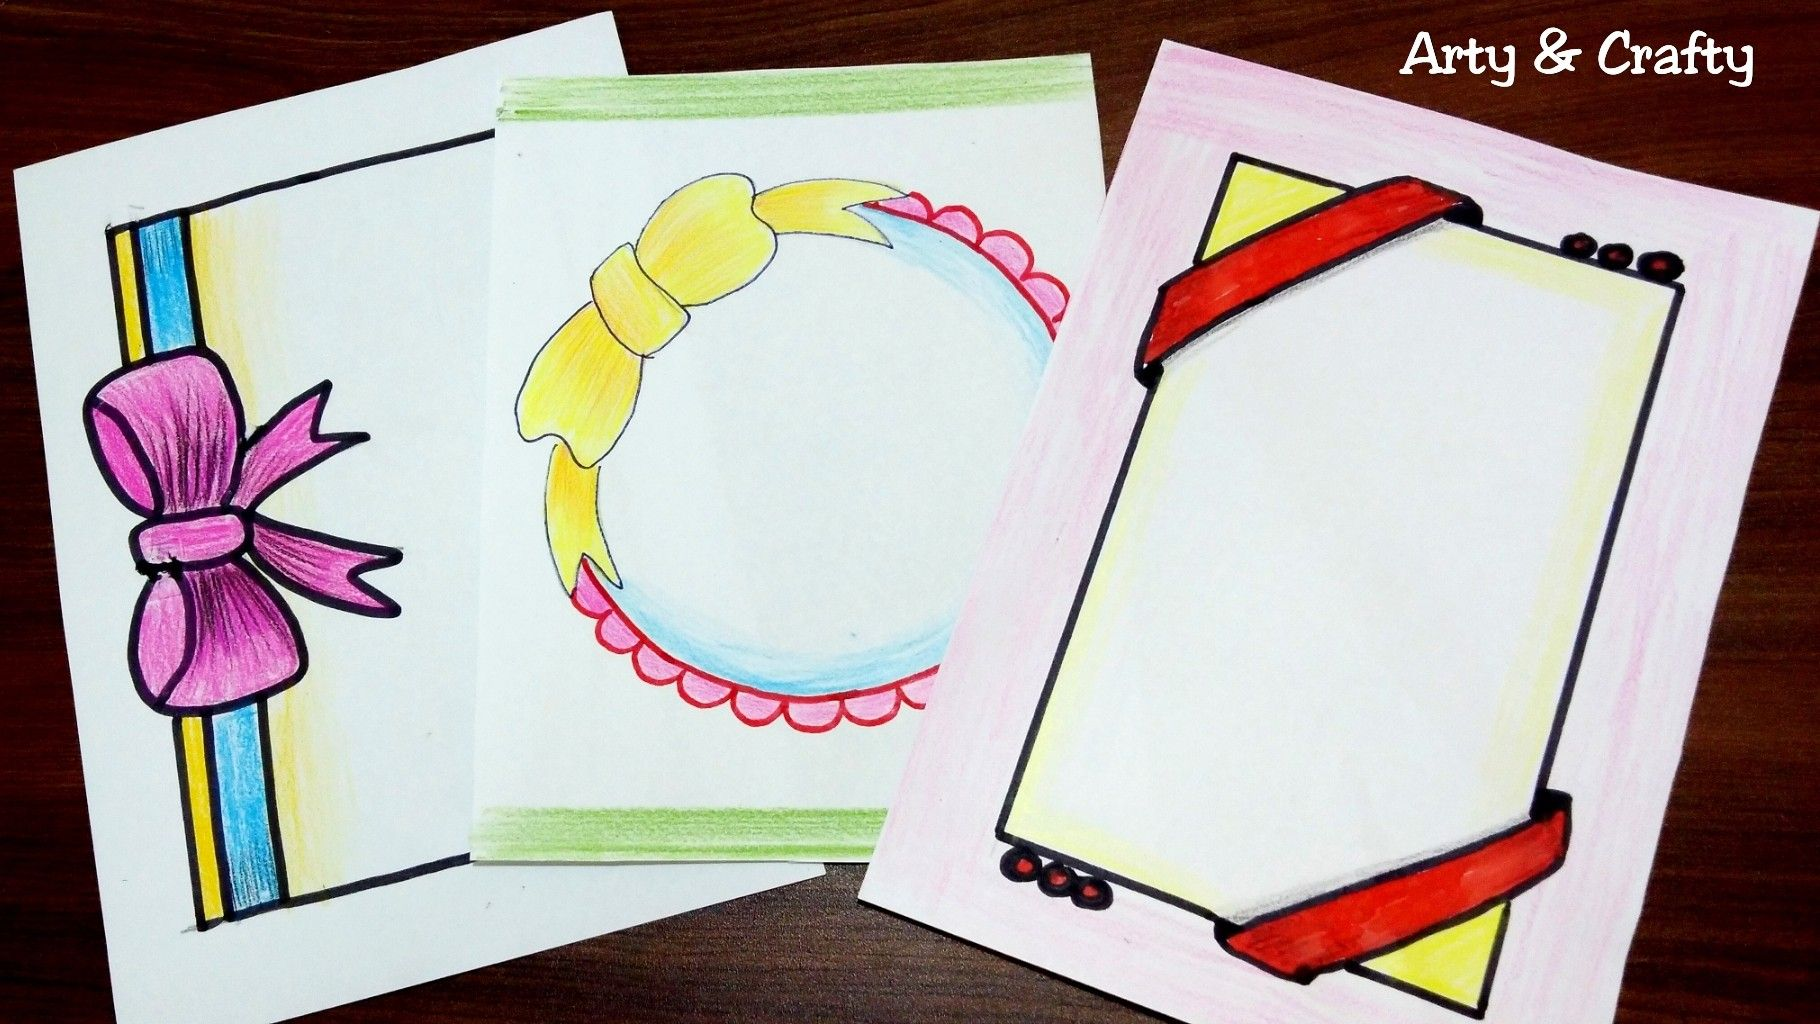 How To Draw Beautiful Border Designs On Paper For Project Work Easy Designs For Project Cute766